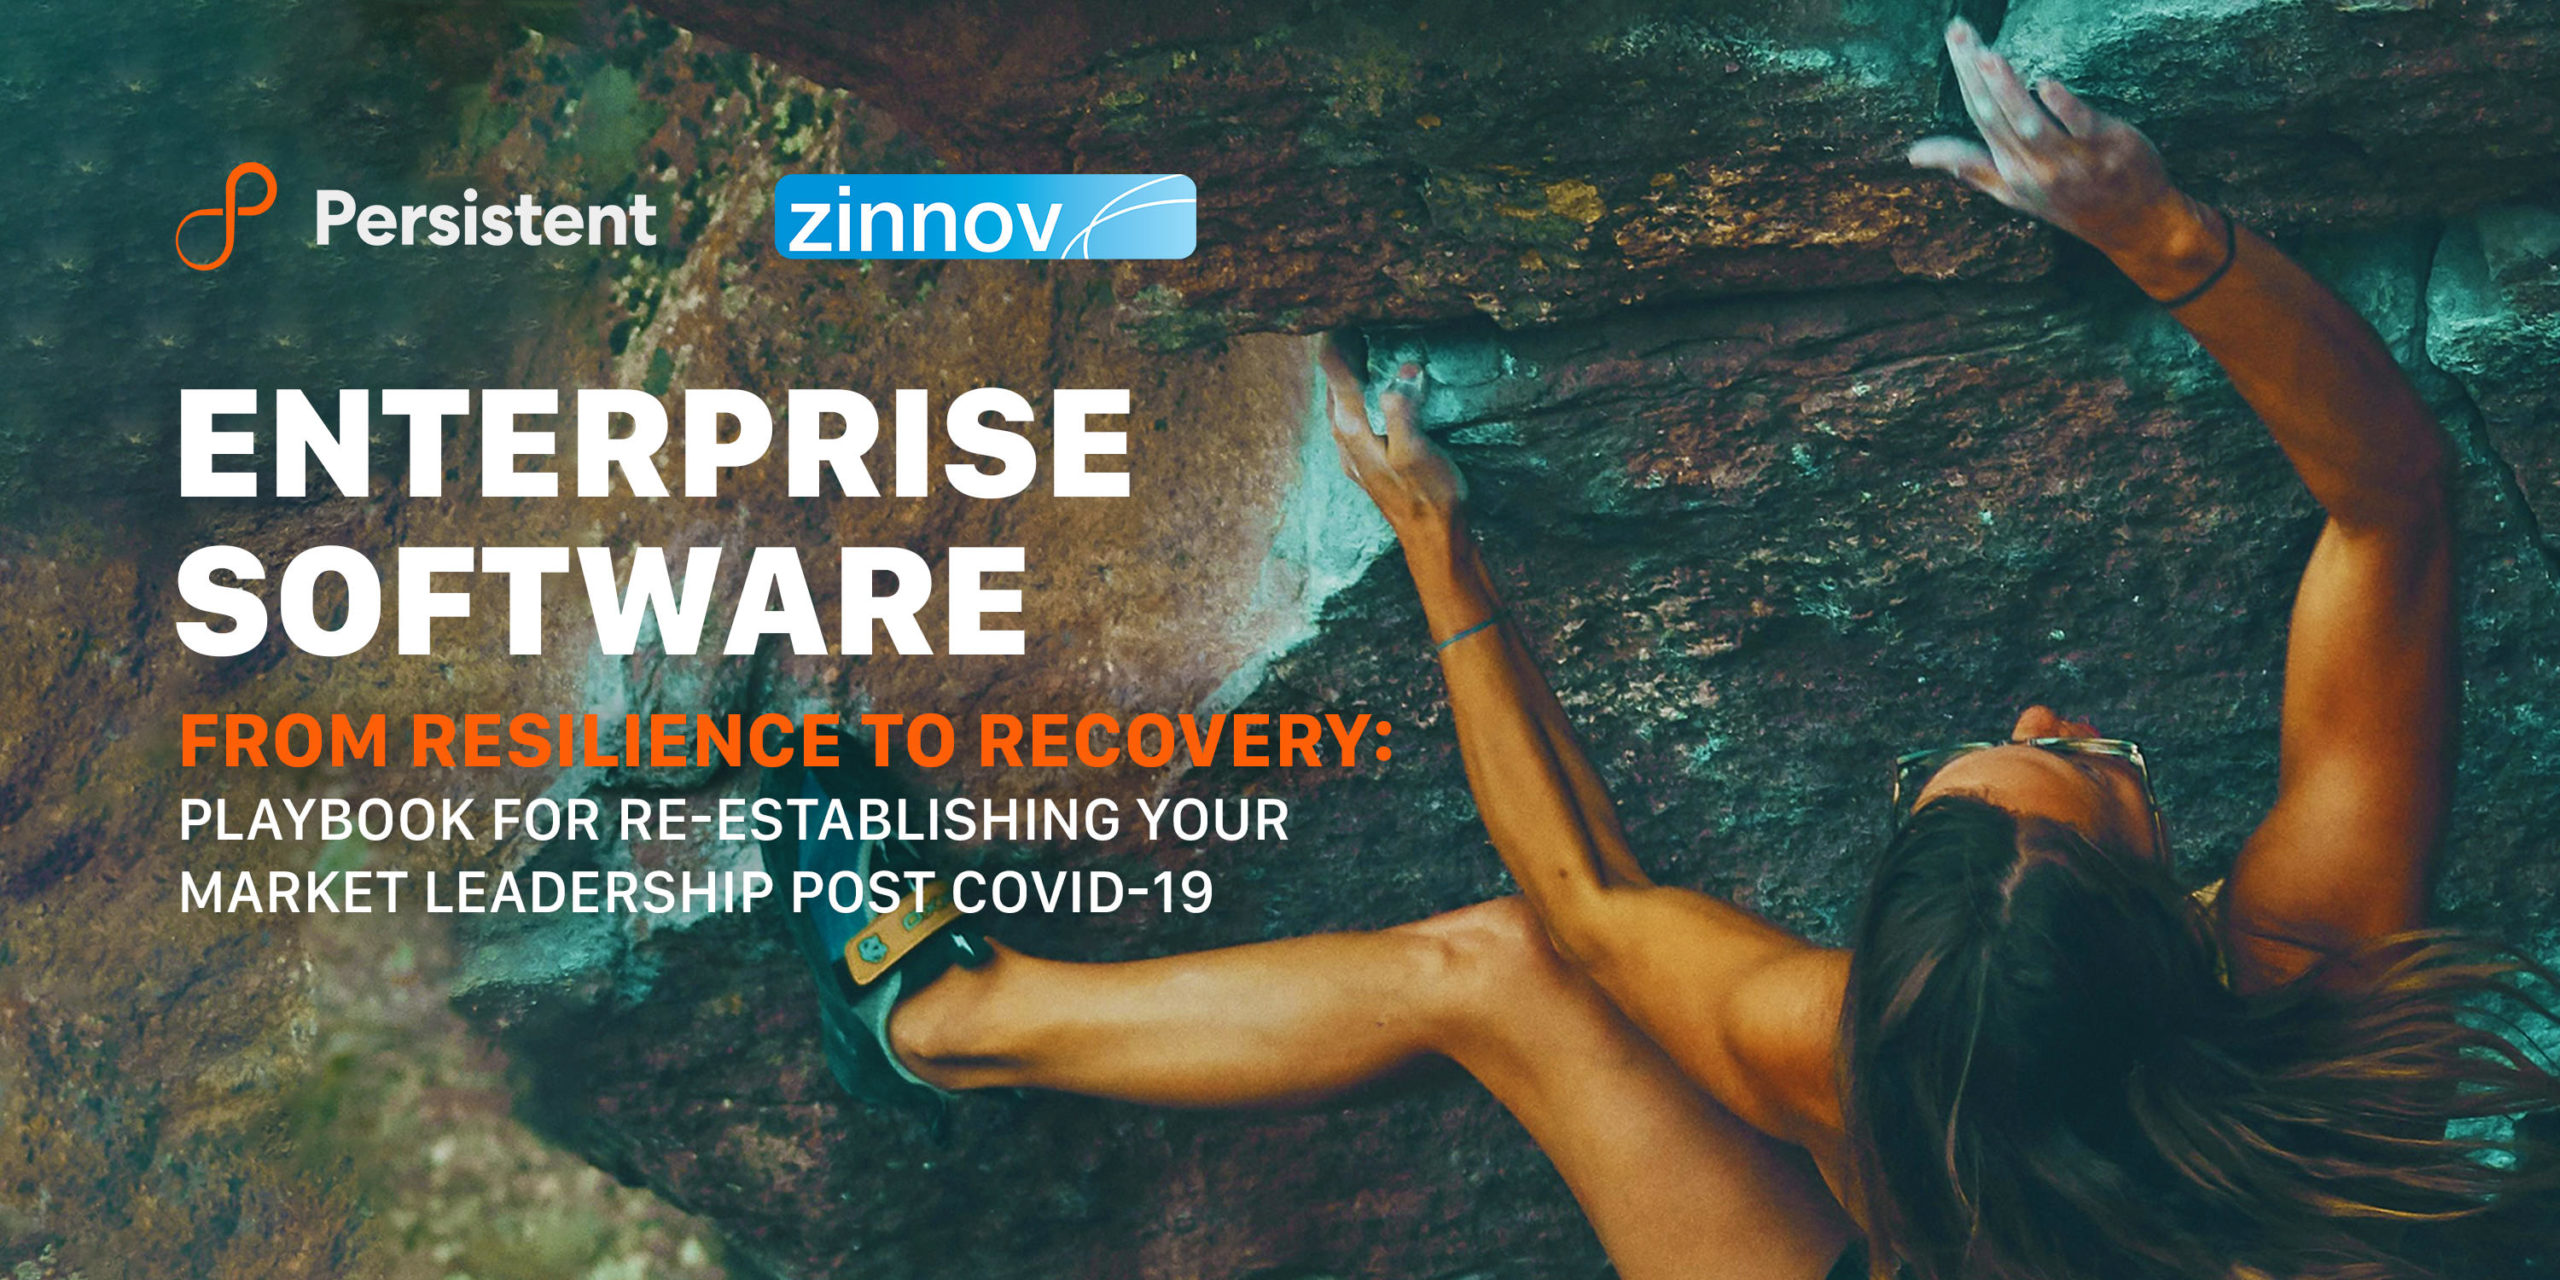 Enterprise Software Market: From Resilience To Recovery In The Post-COVID World